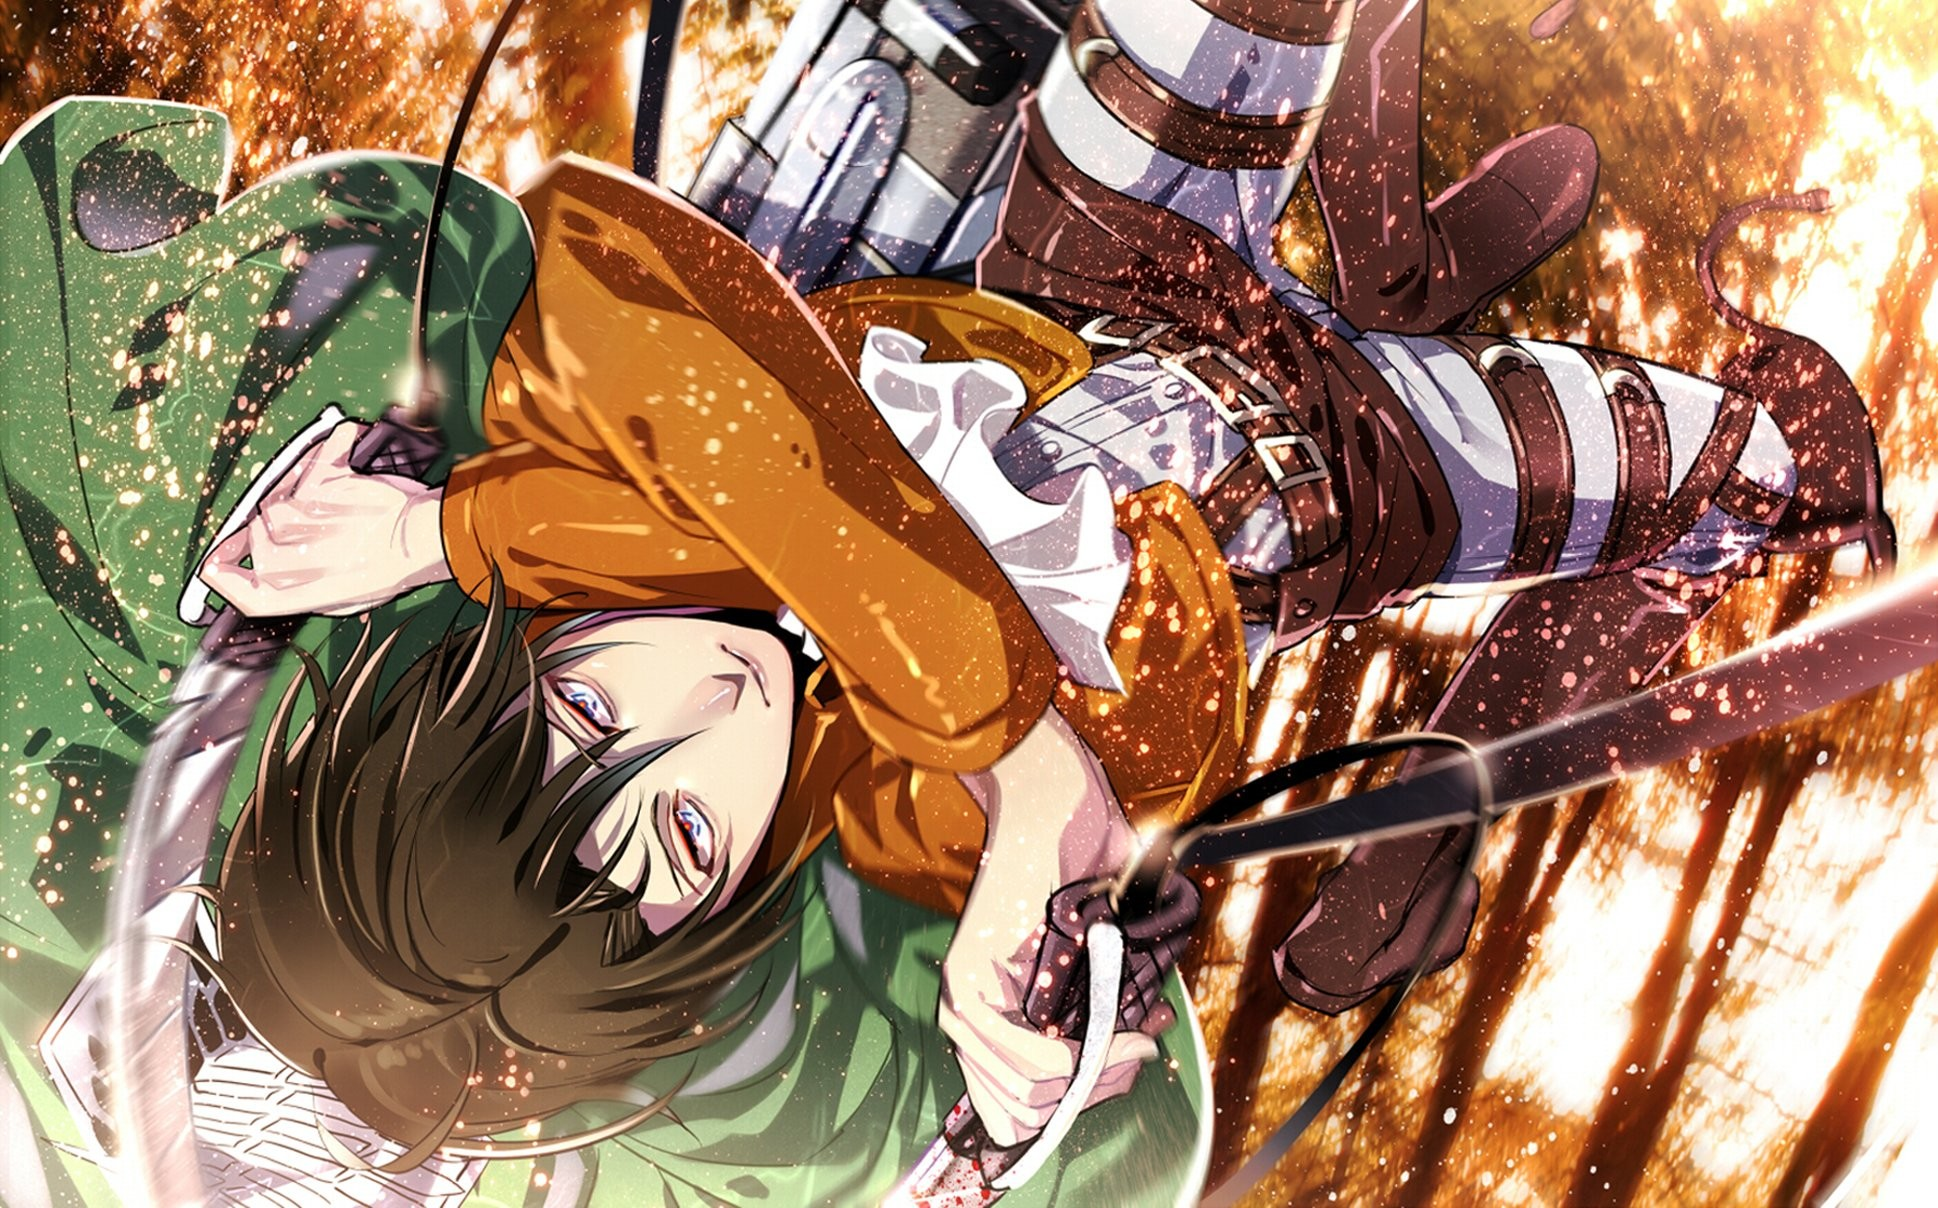 1938x1208 Attack on titan shingeki no kyojin guy anime art rivaille levi wallpaper |   | 932959 | WallpaperUP